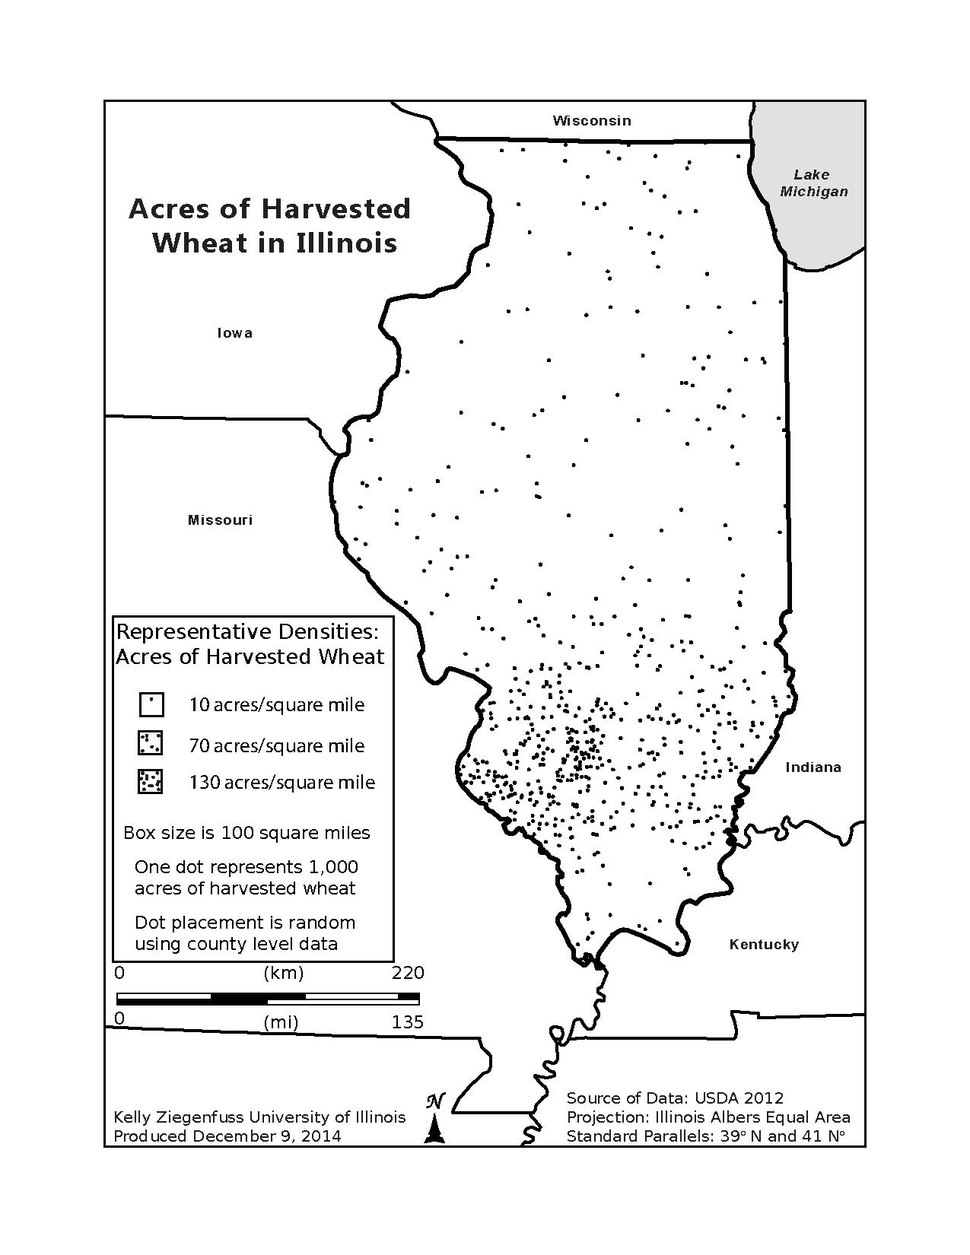 Acres of Harvested Wheat in Illinois in 2012.pdf